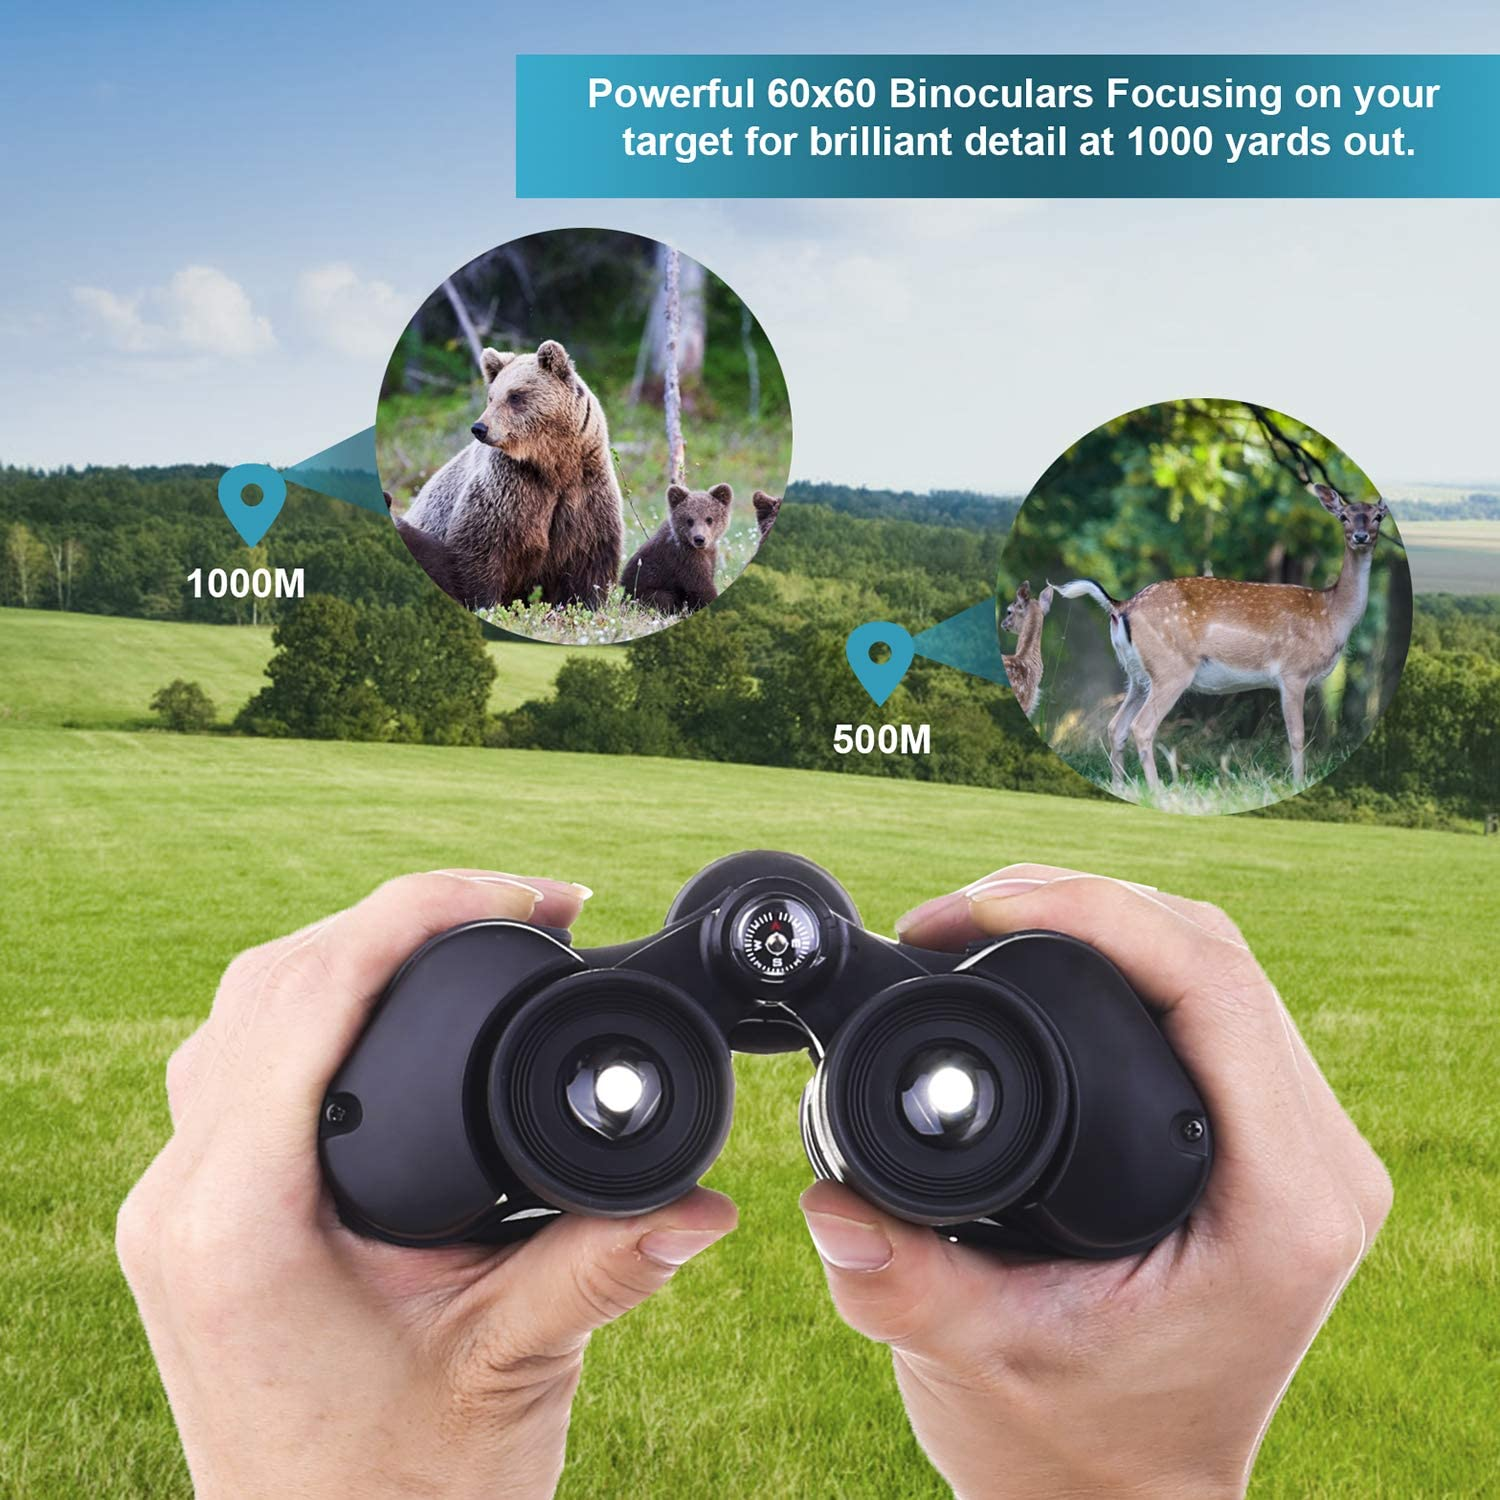 Sightseeing Concerts Sport Games Fit for Adults and Kids Large Eyepiece High Power Binocular Easy Focus for Outdoor Hunting Traveling NELOMO 60x60 Compact Professional Binoculars with Low Light Night Vision bird watching